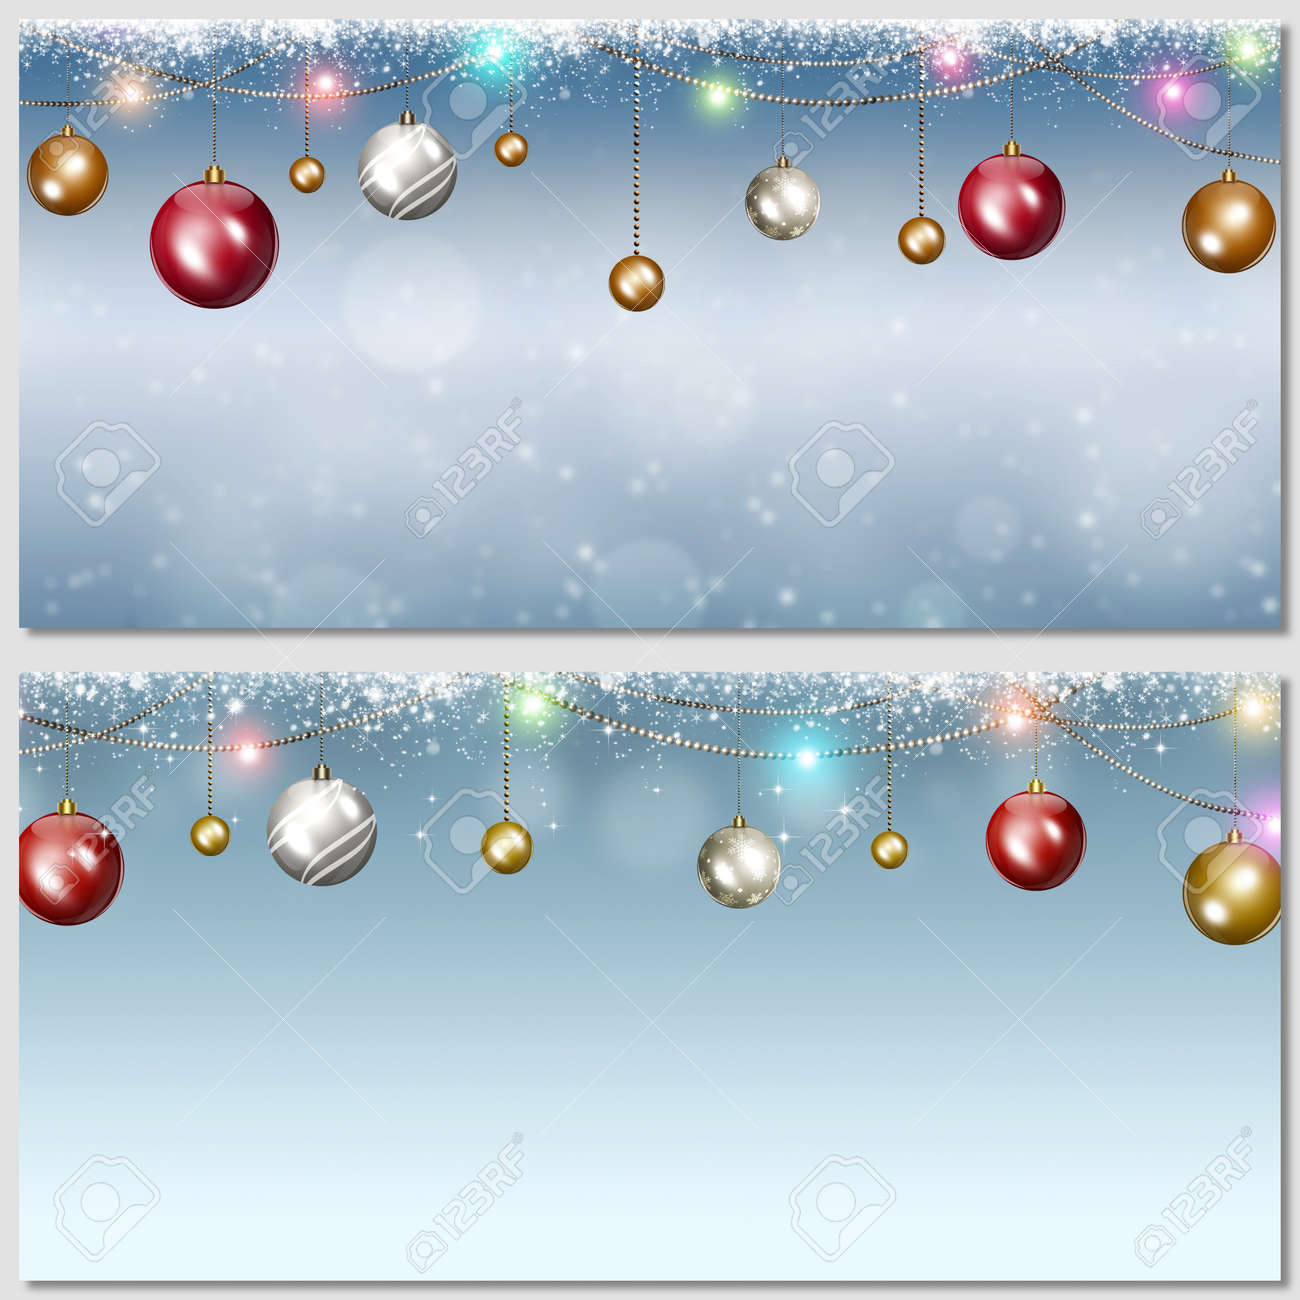 Winter Holiday Banners Resort Banners